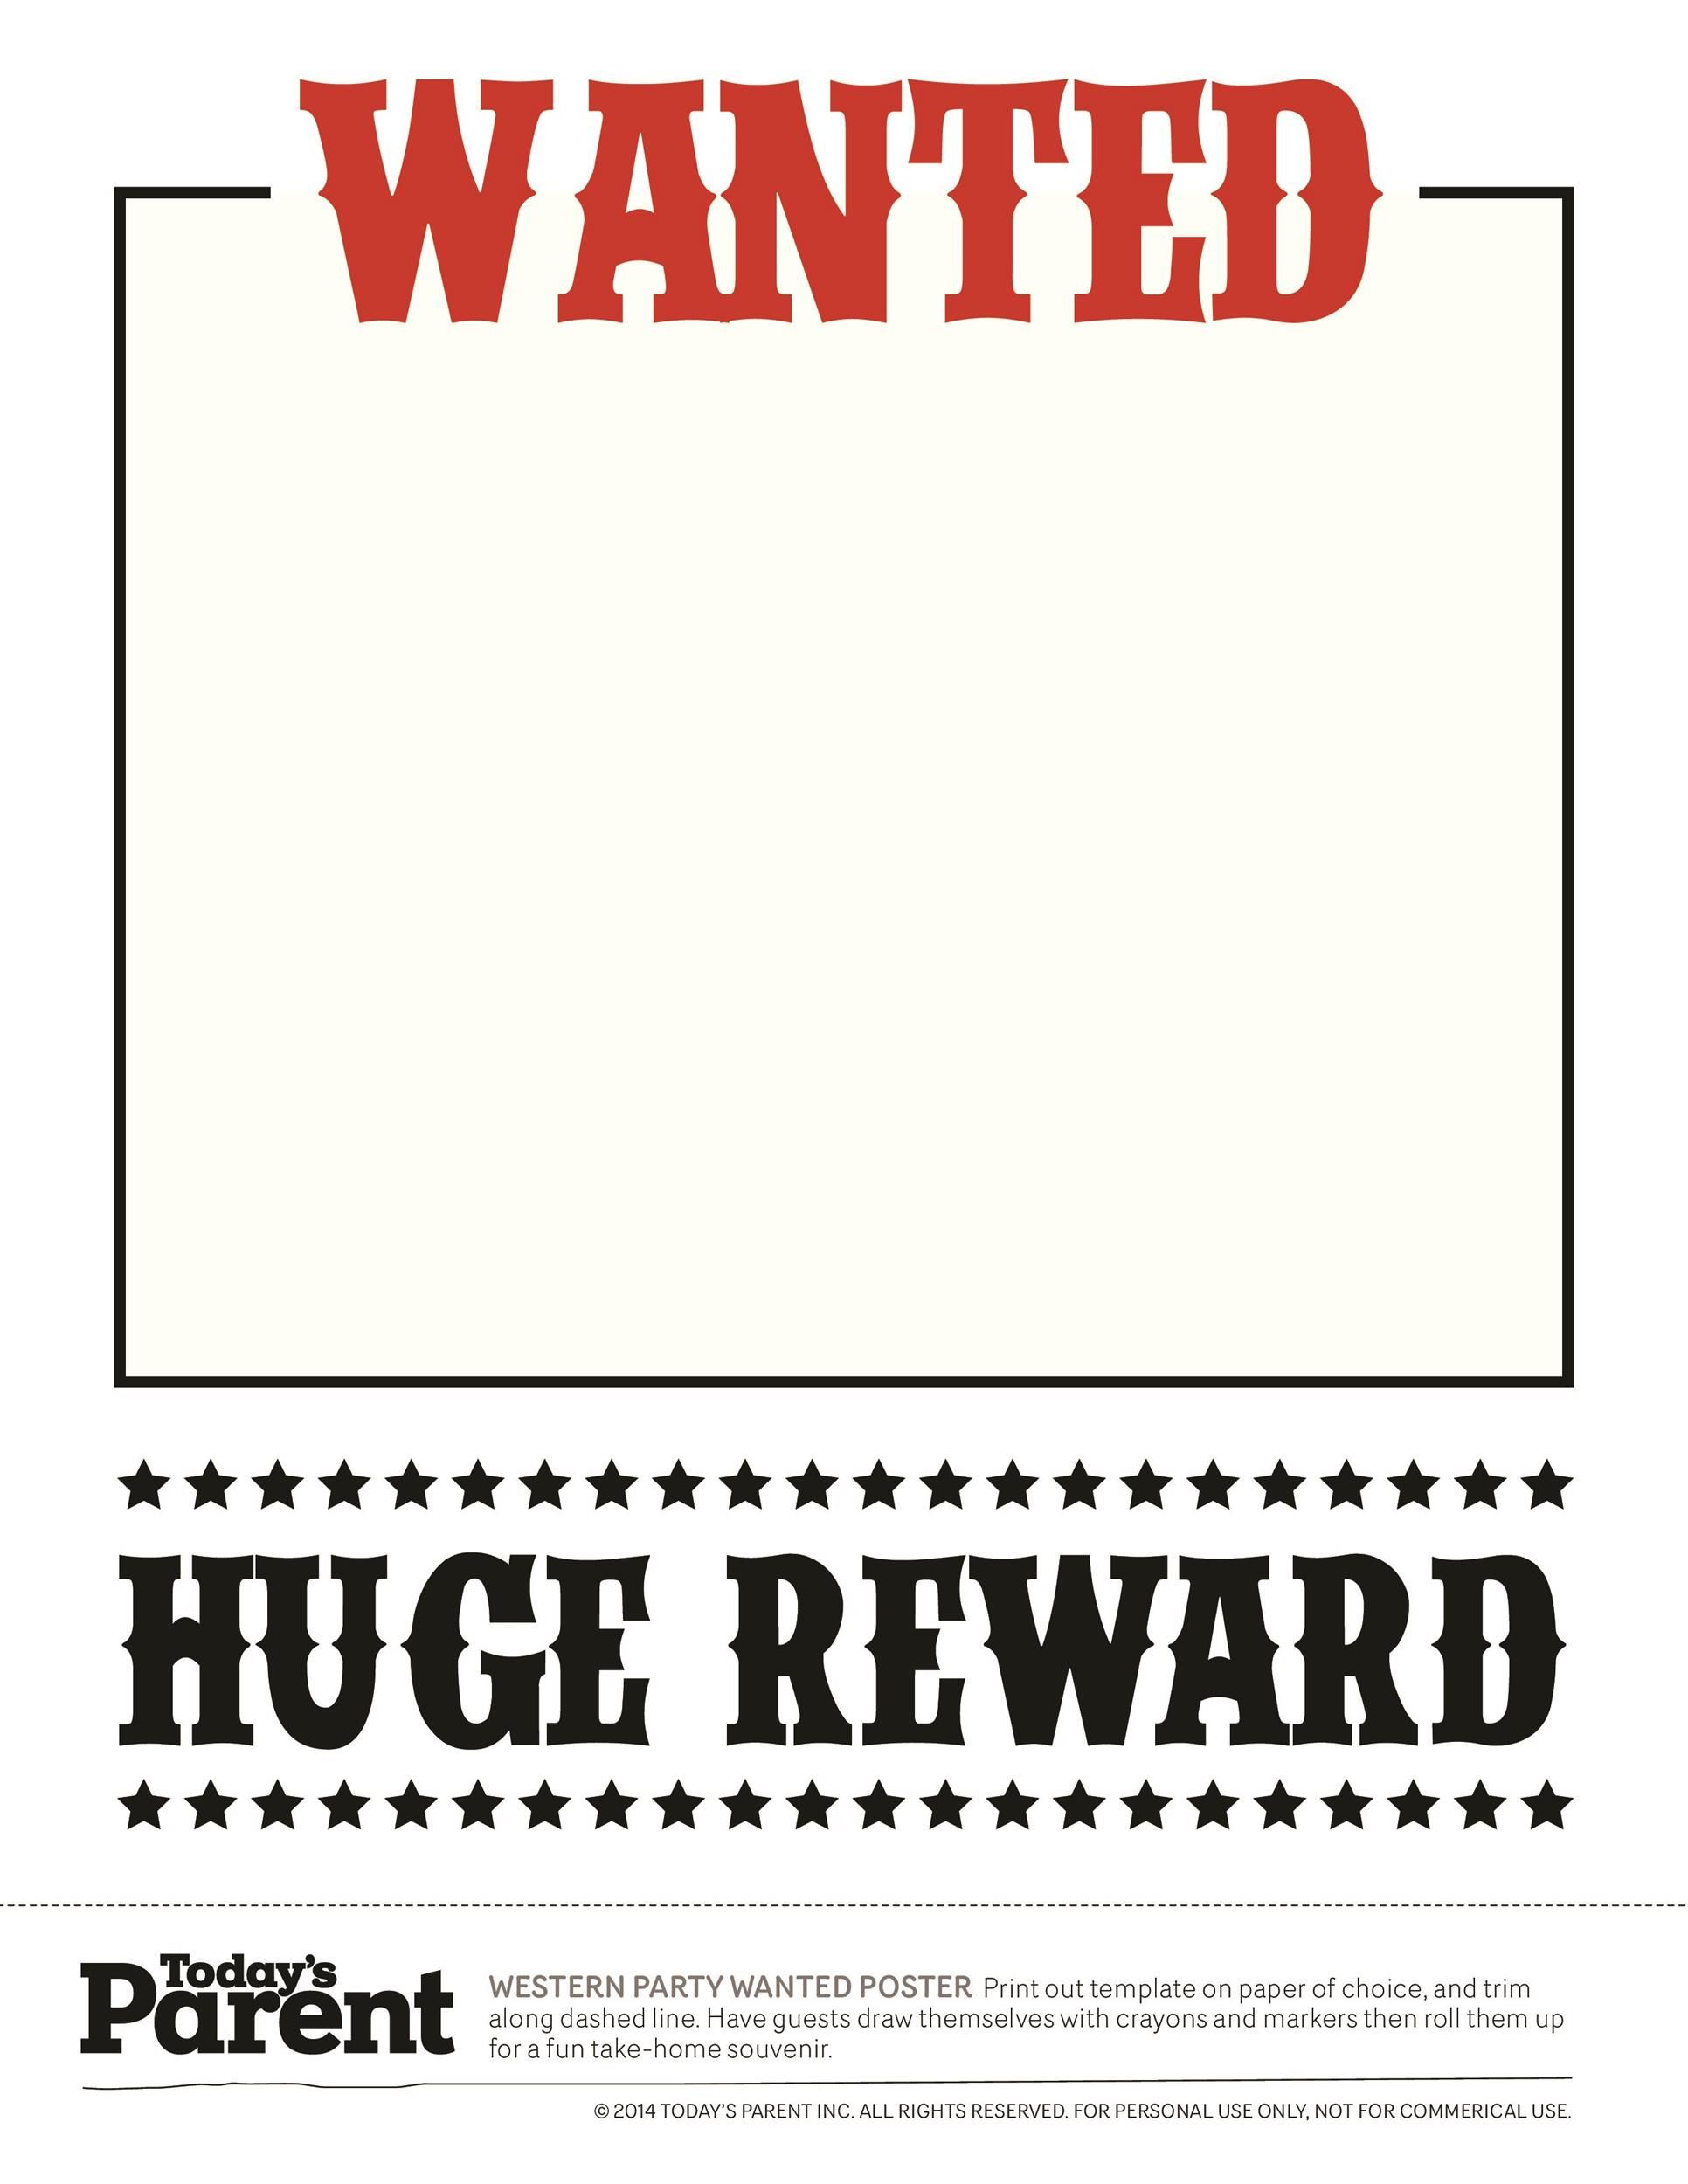 003 Wonderful Wanted Poster Template Microsoft Word Image  Western MostFull